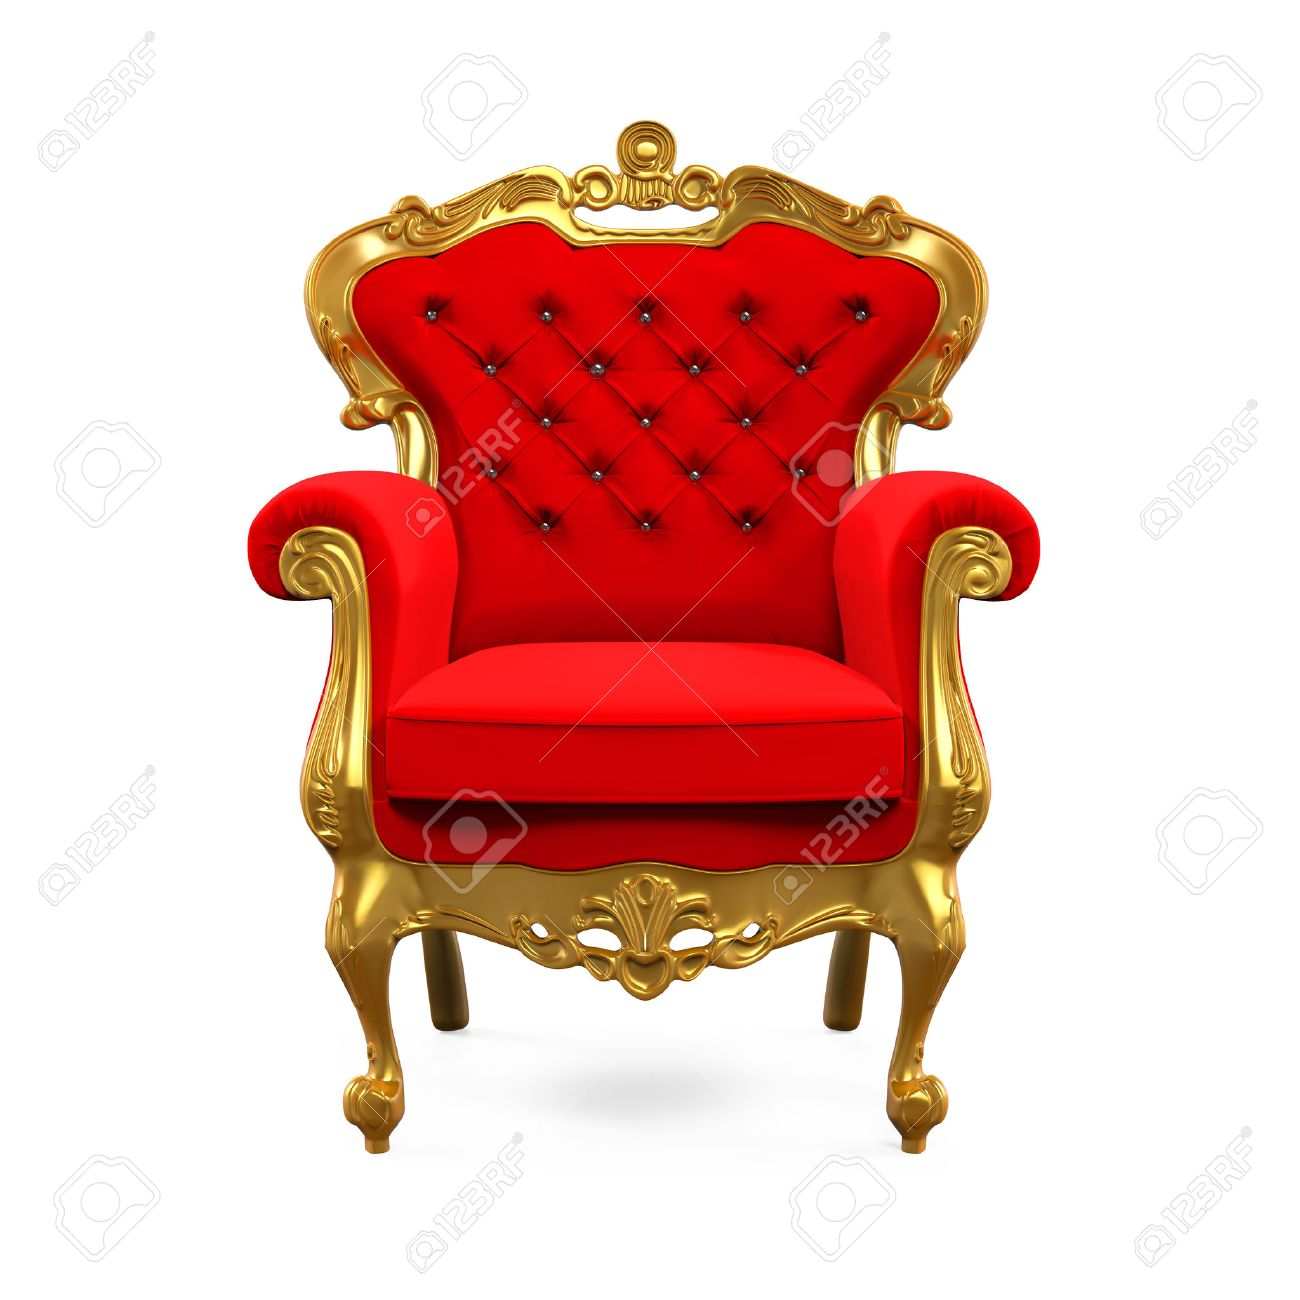 King Throne Chair Stock Photo   62345919